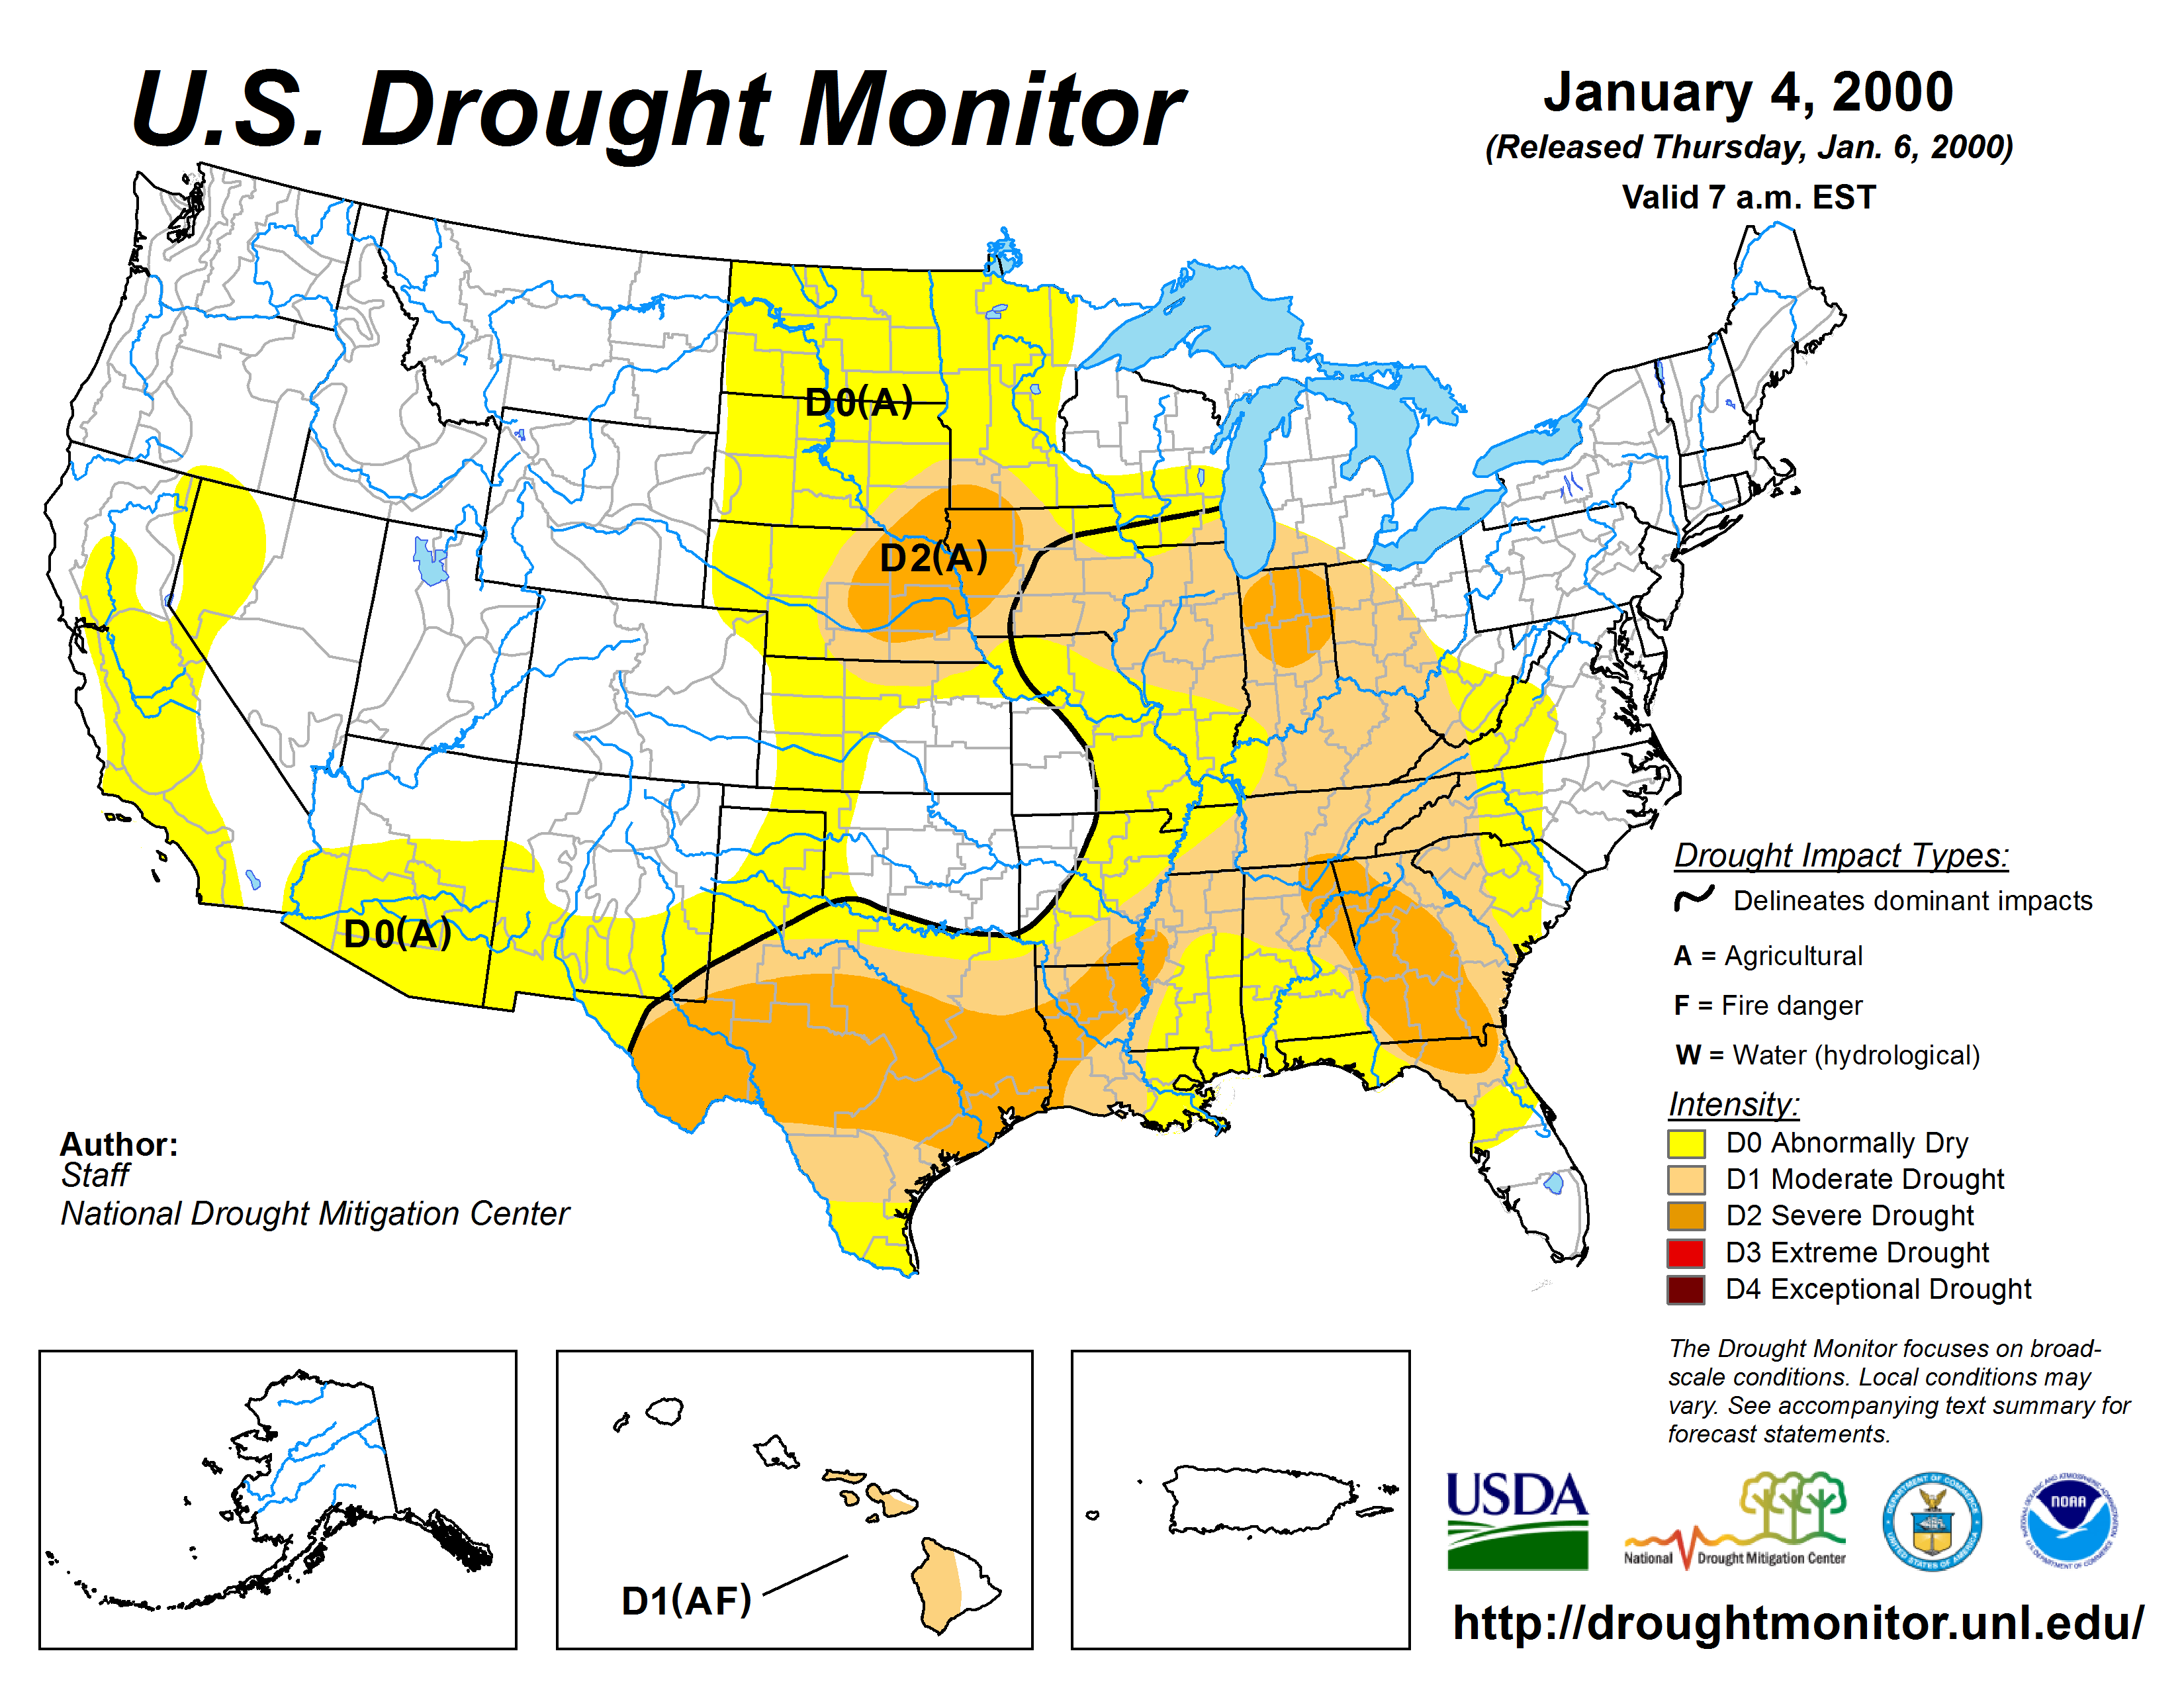 Drought Monitor for usdm